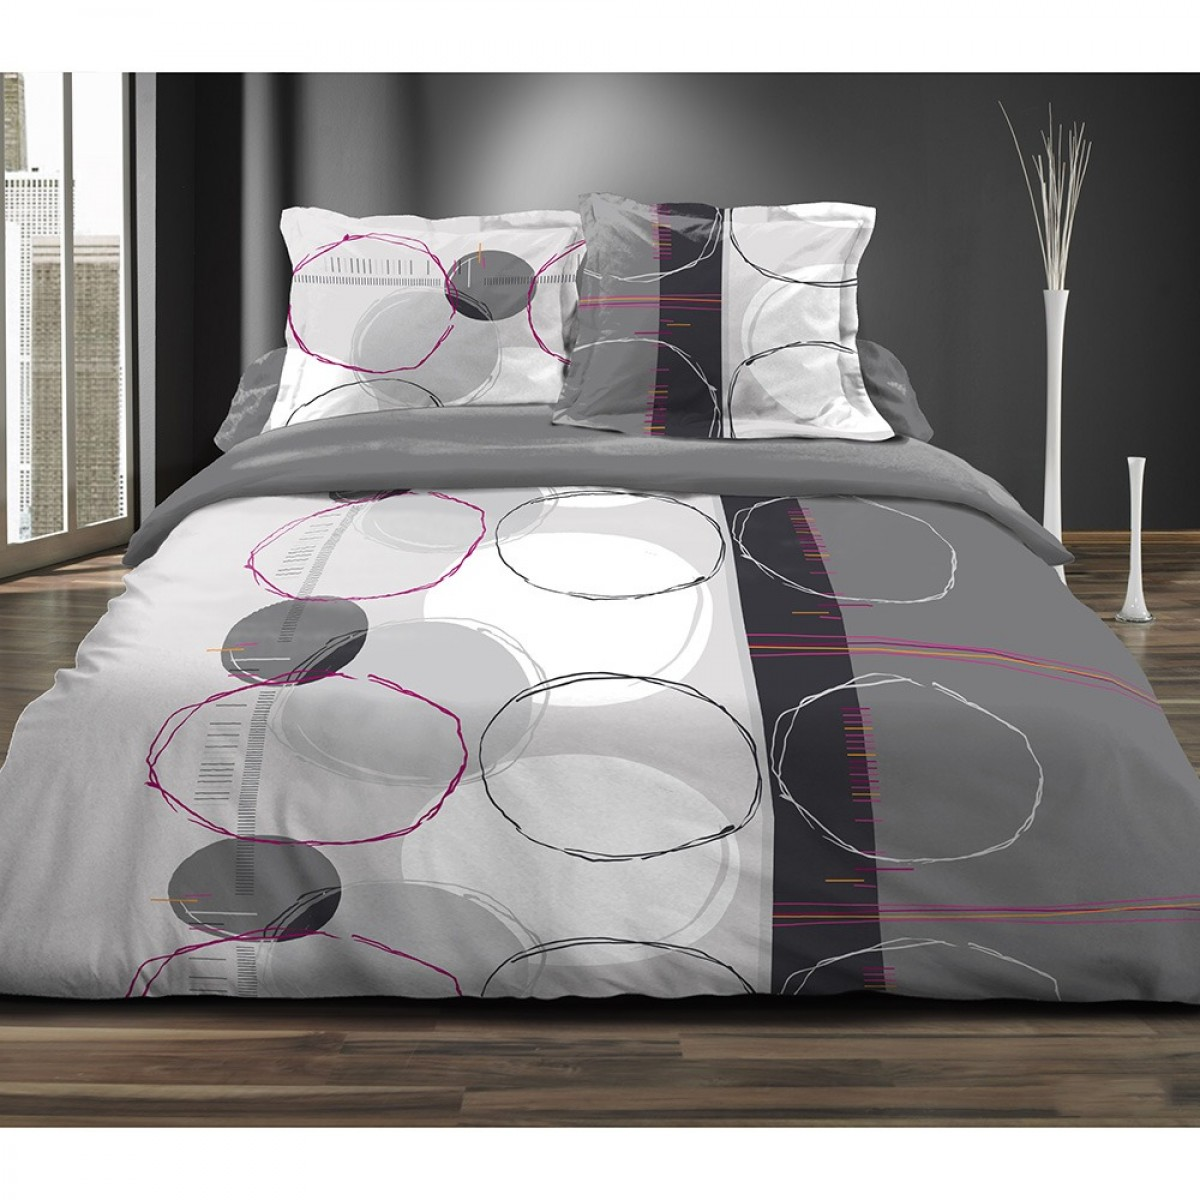 couette imprim e 220x240 cm cercles doodles les douces nuits de ma linge de maison. Black Bedroom Furniture Sets. Home Design Ideas